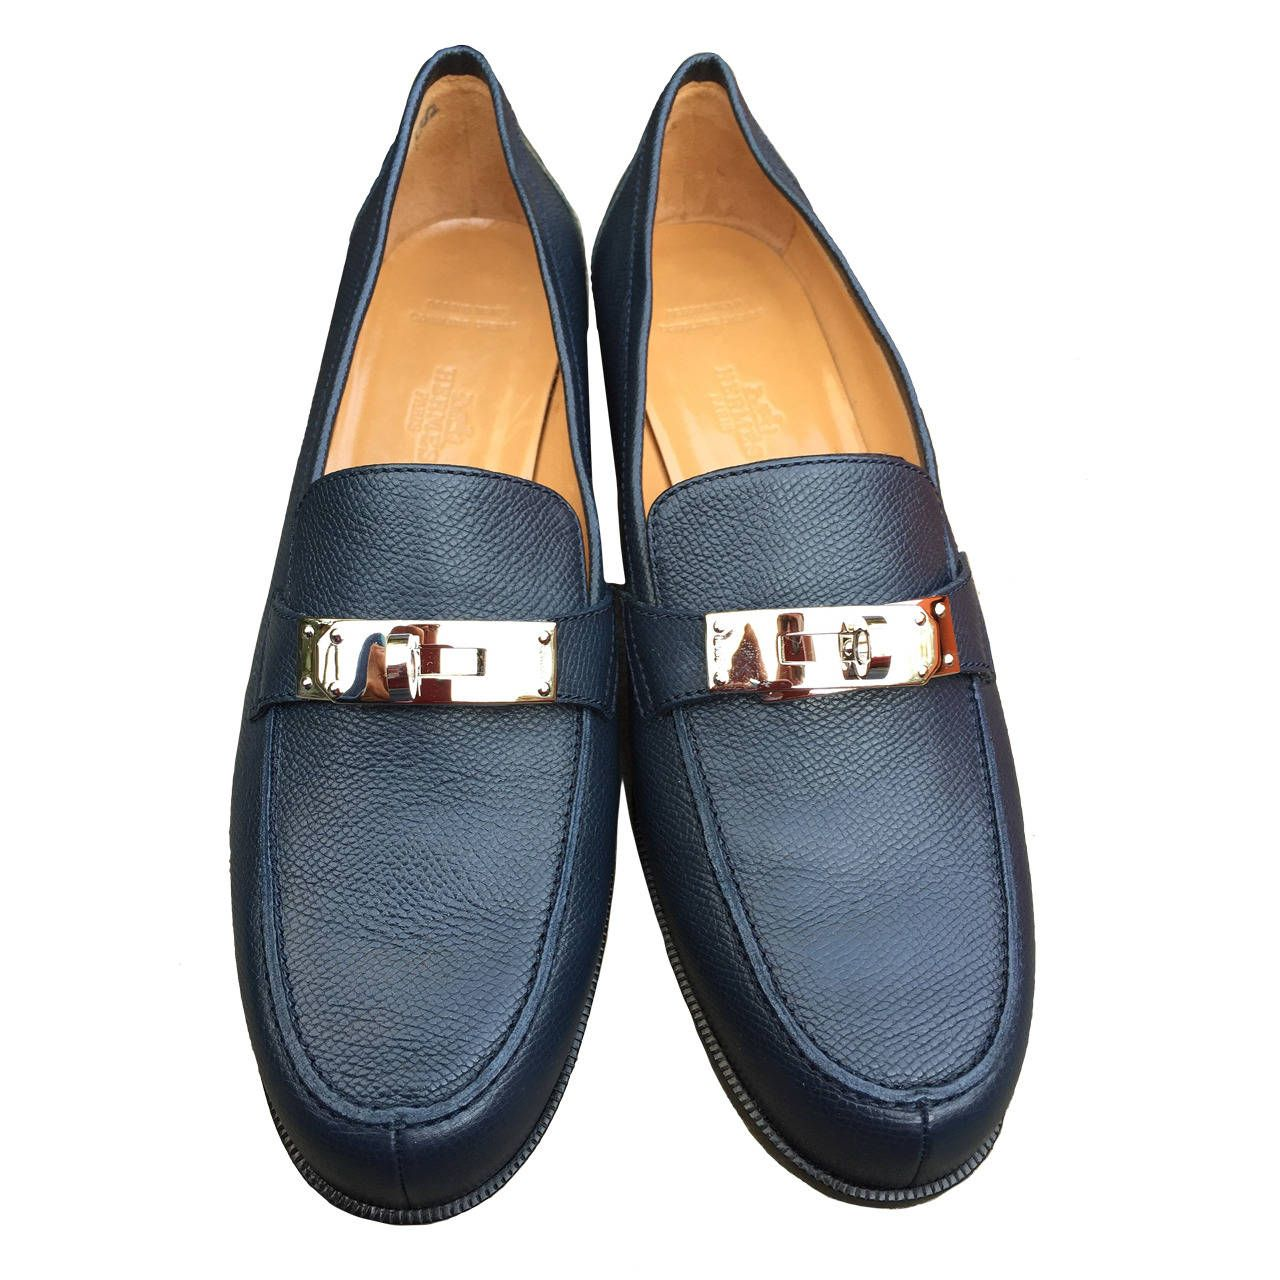 d214b4f9ff2 Hermes Loafer with Kelly Lock Details New in Box 9